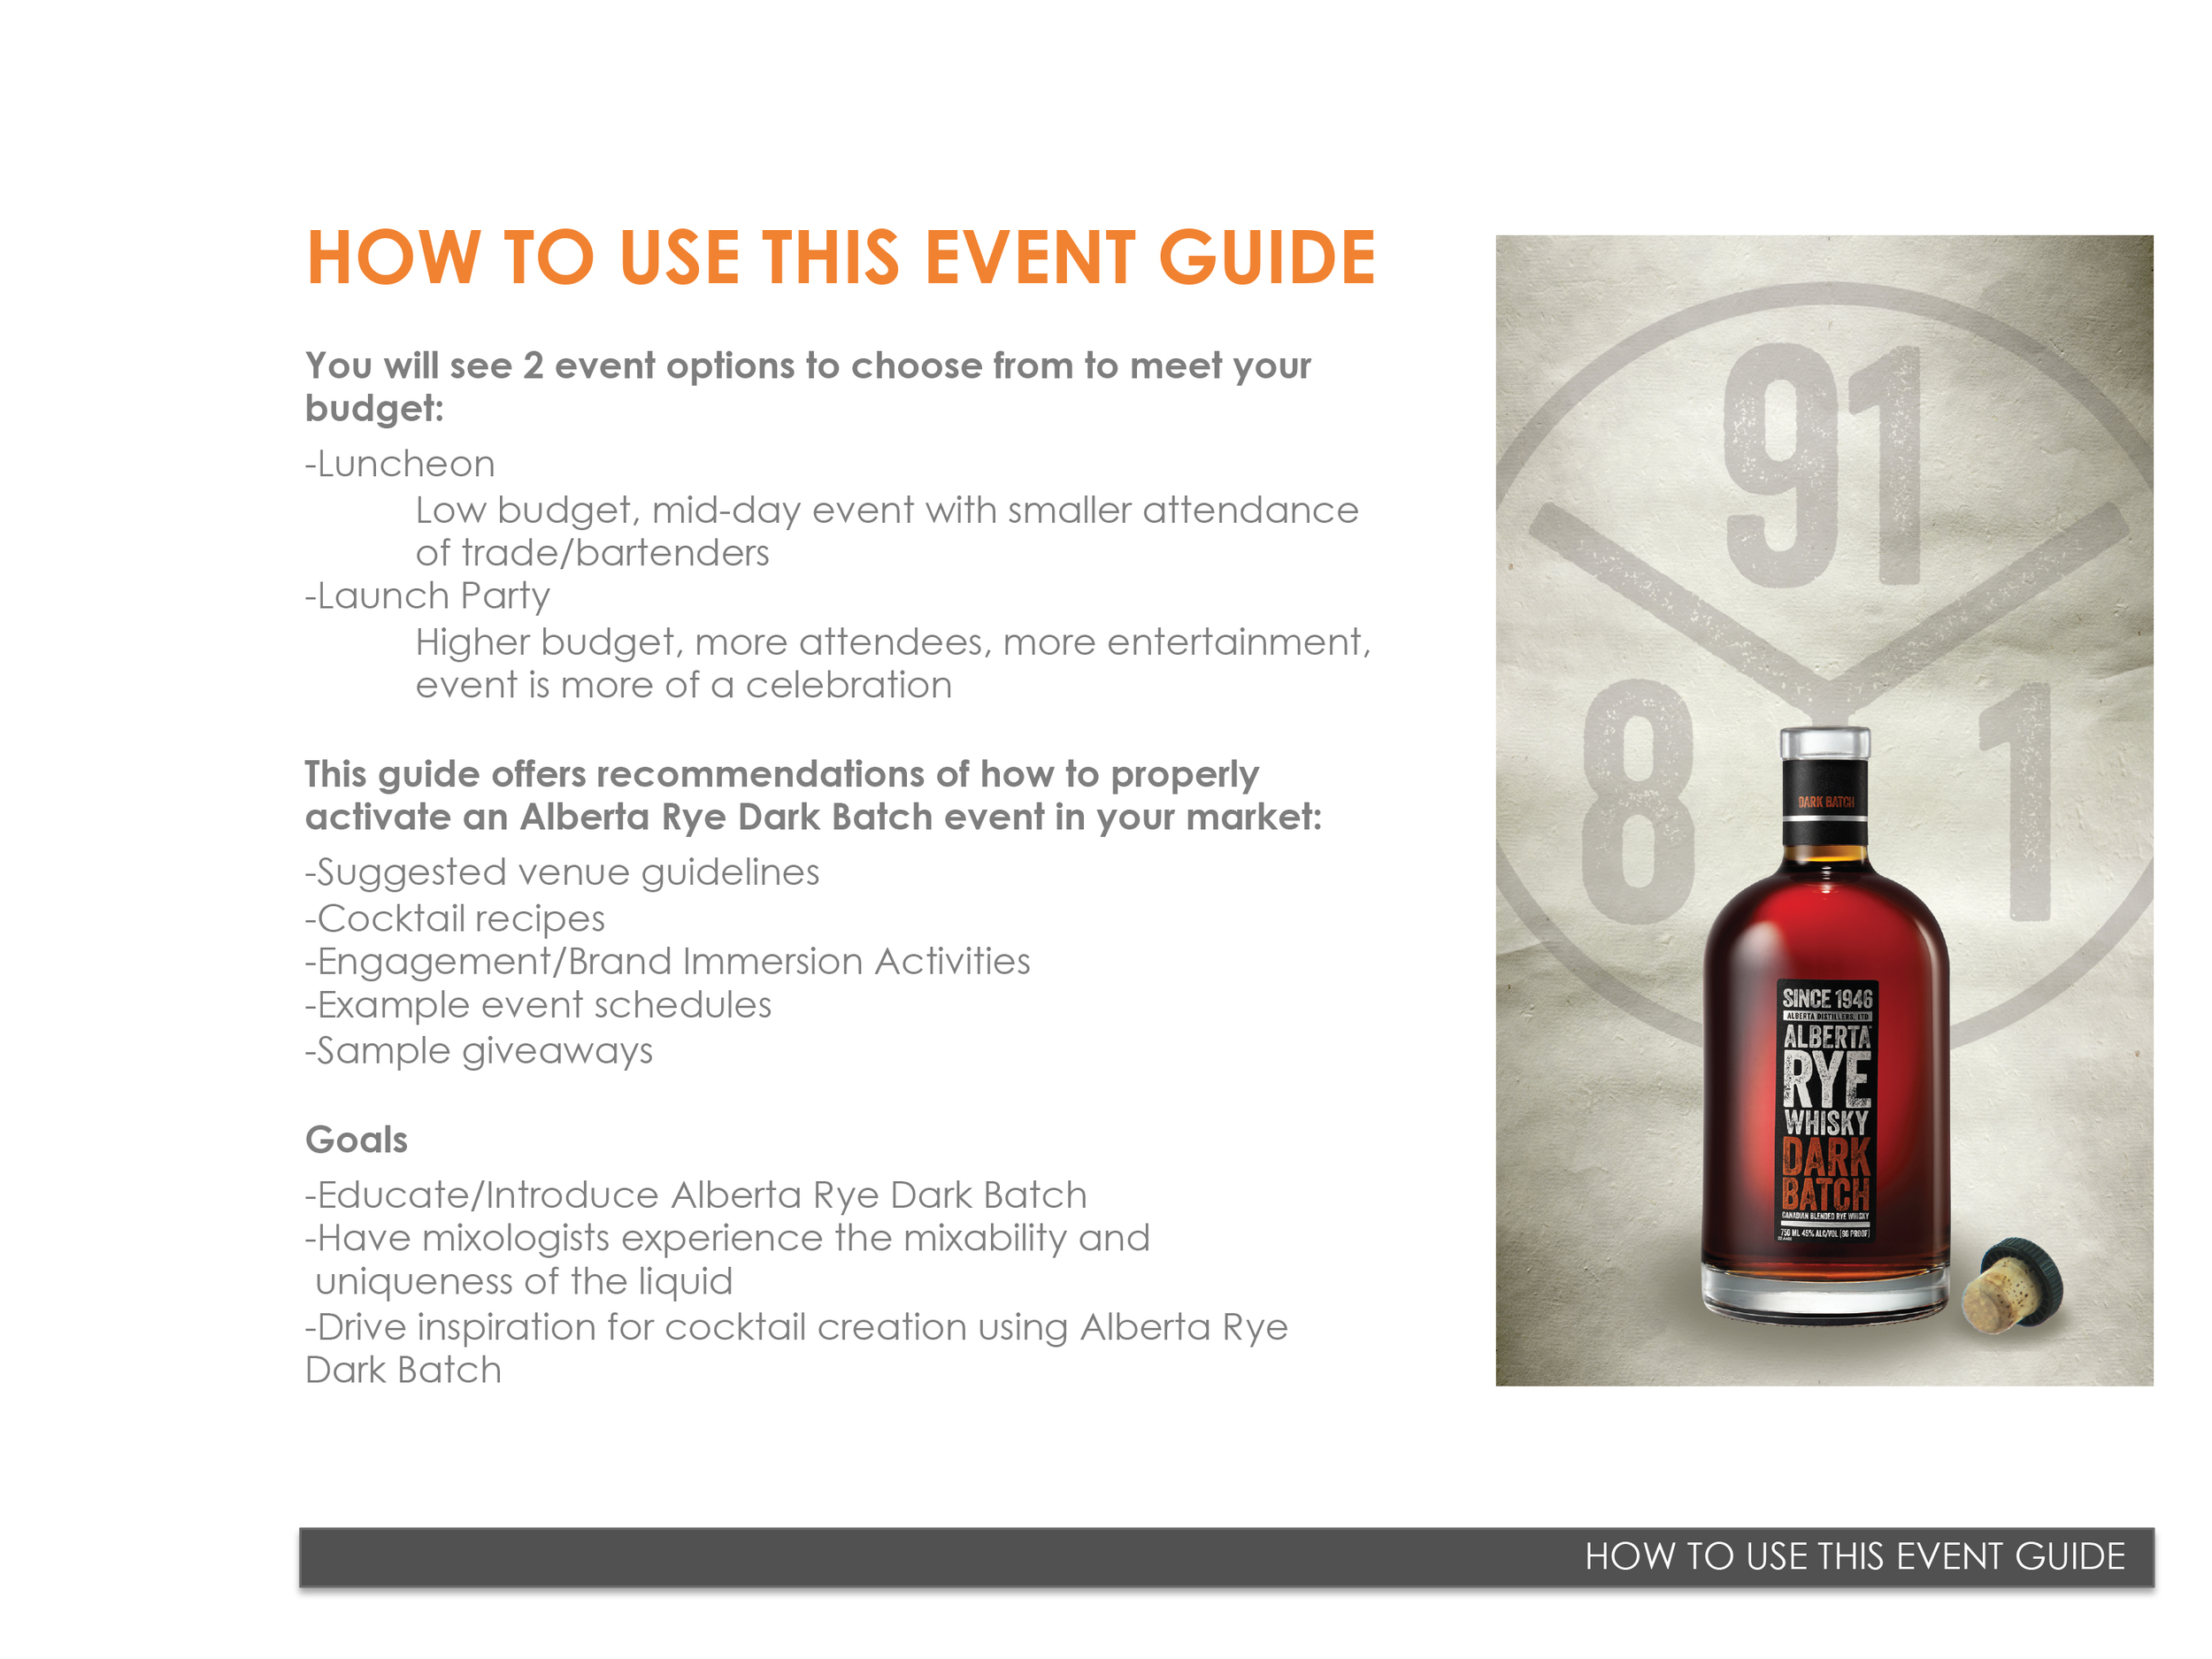 Alberta Rye Dark Batch Activation Guide 4.6-2.jpg